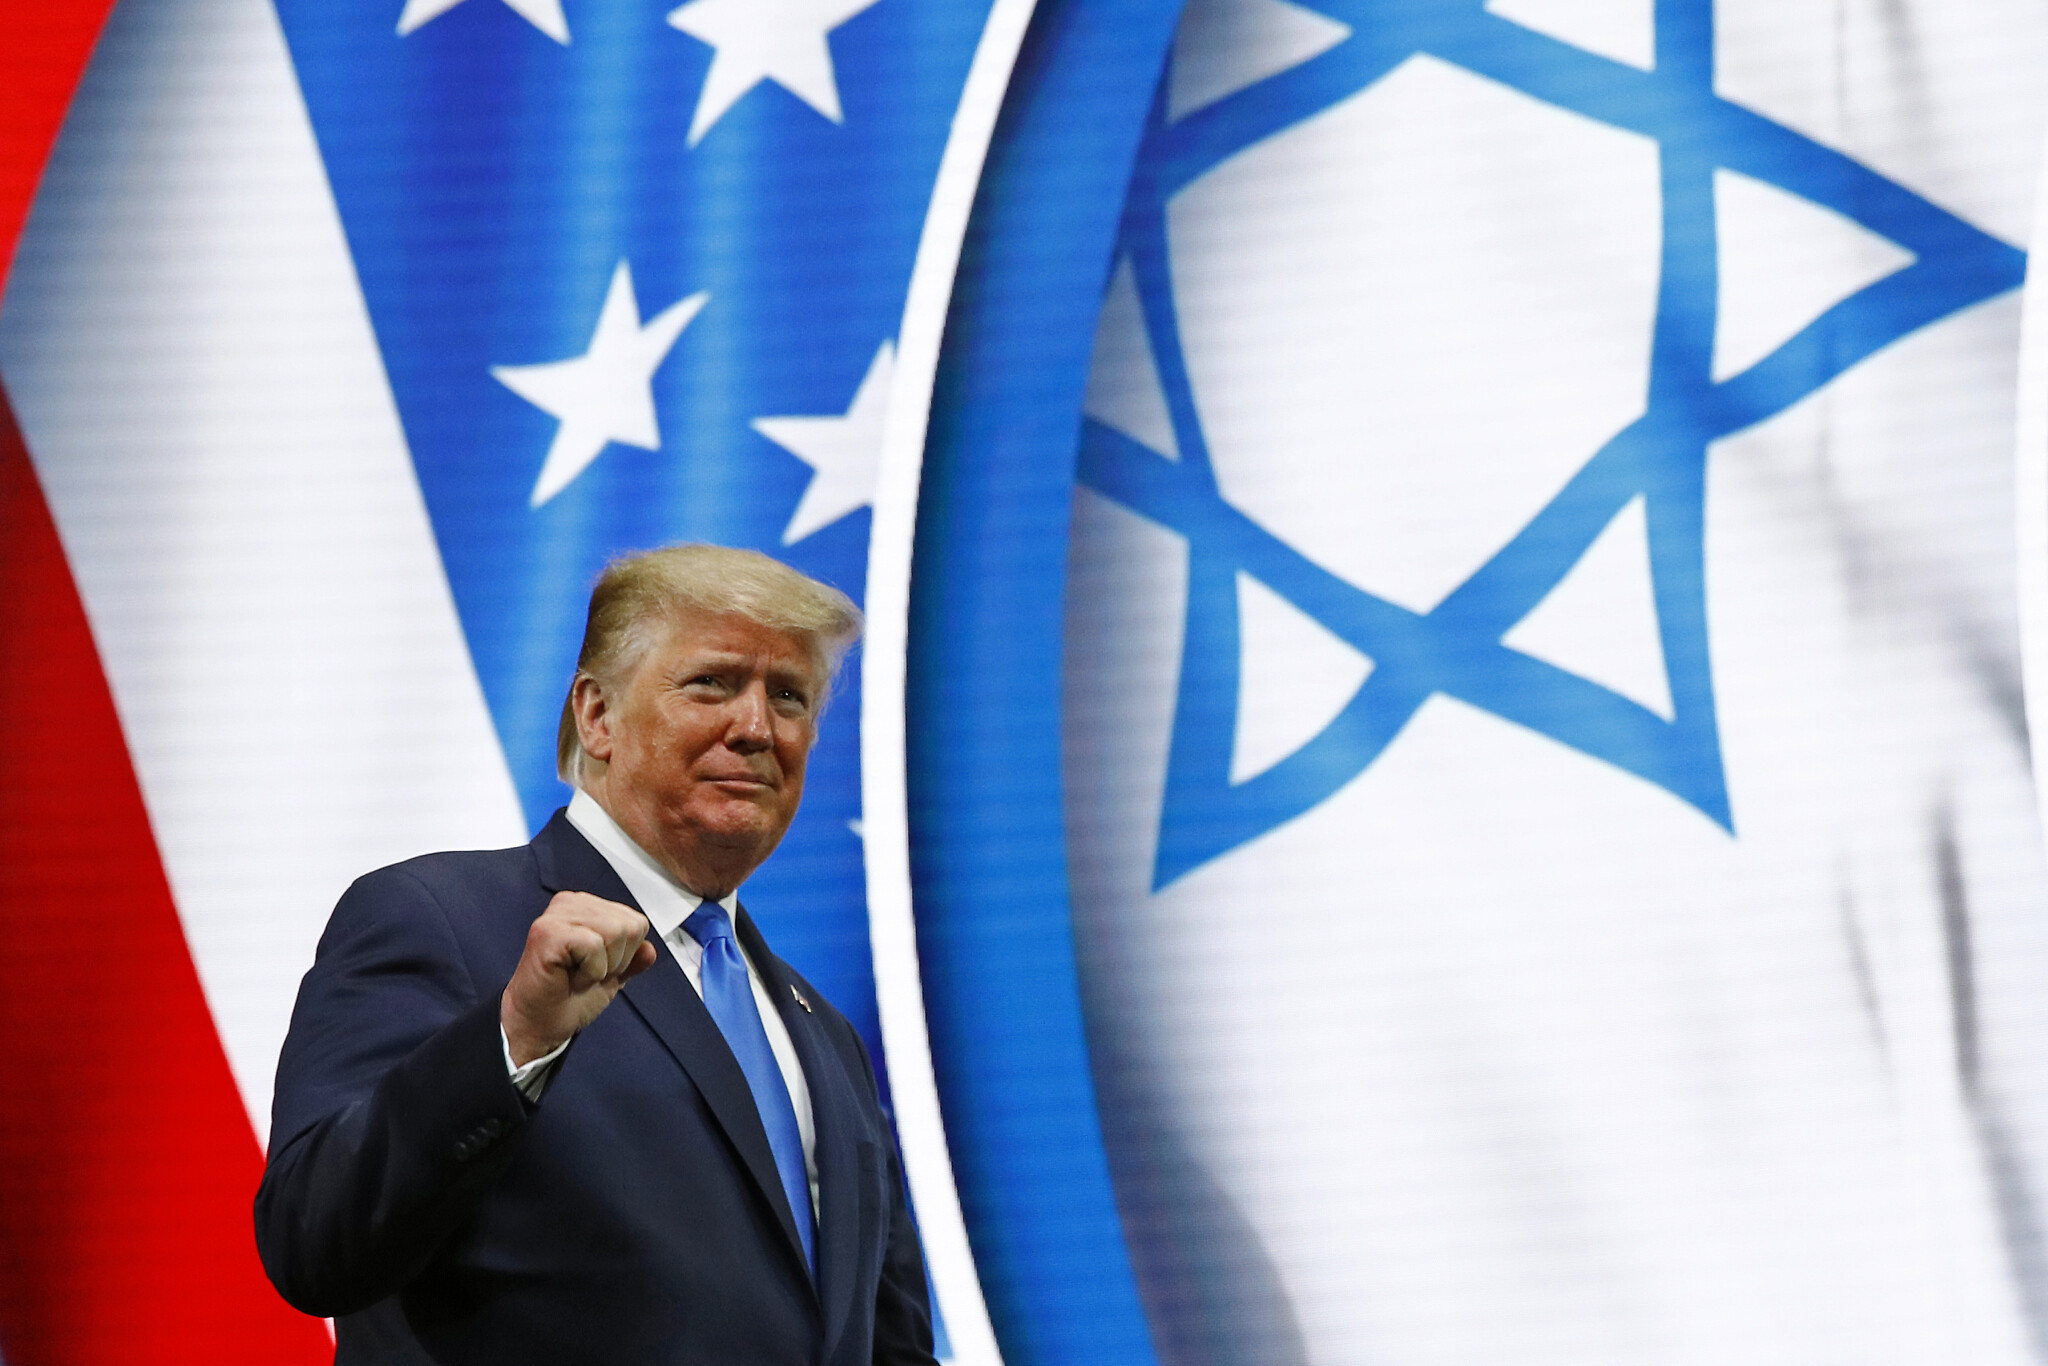 Amid criticism, Trump signs order targeting anti-Semitism at universities